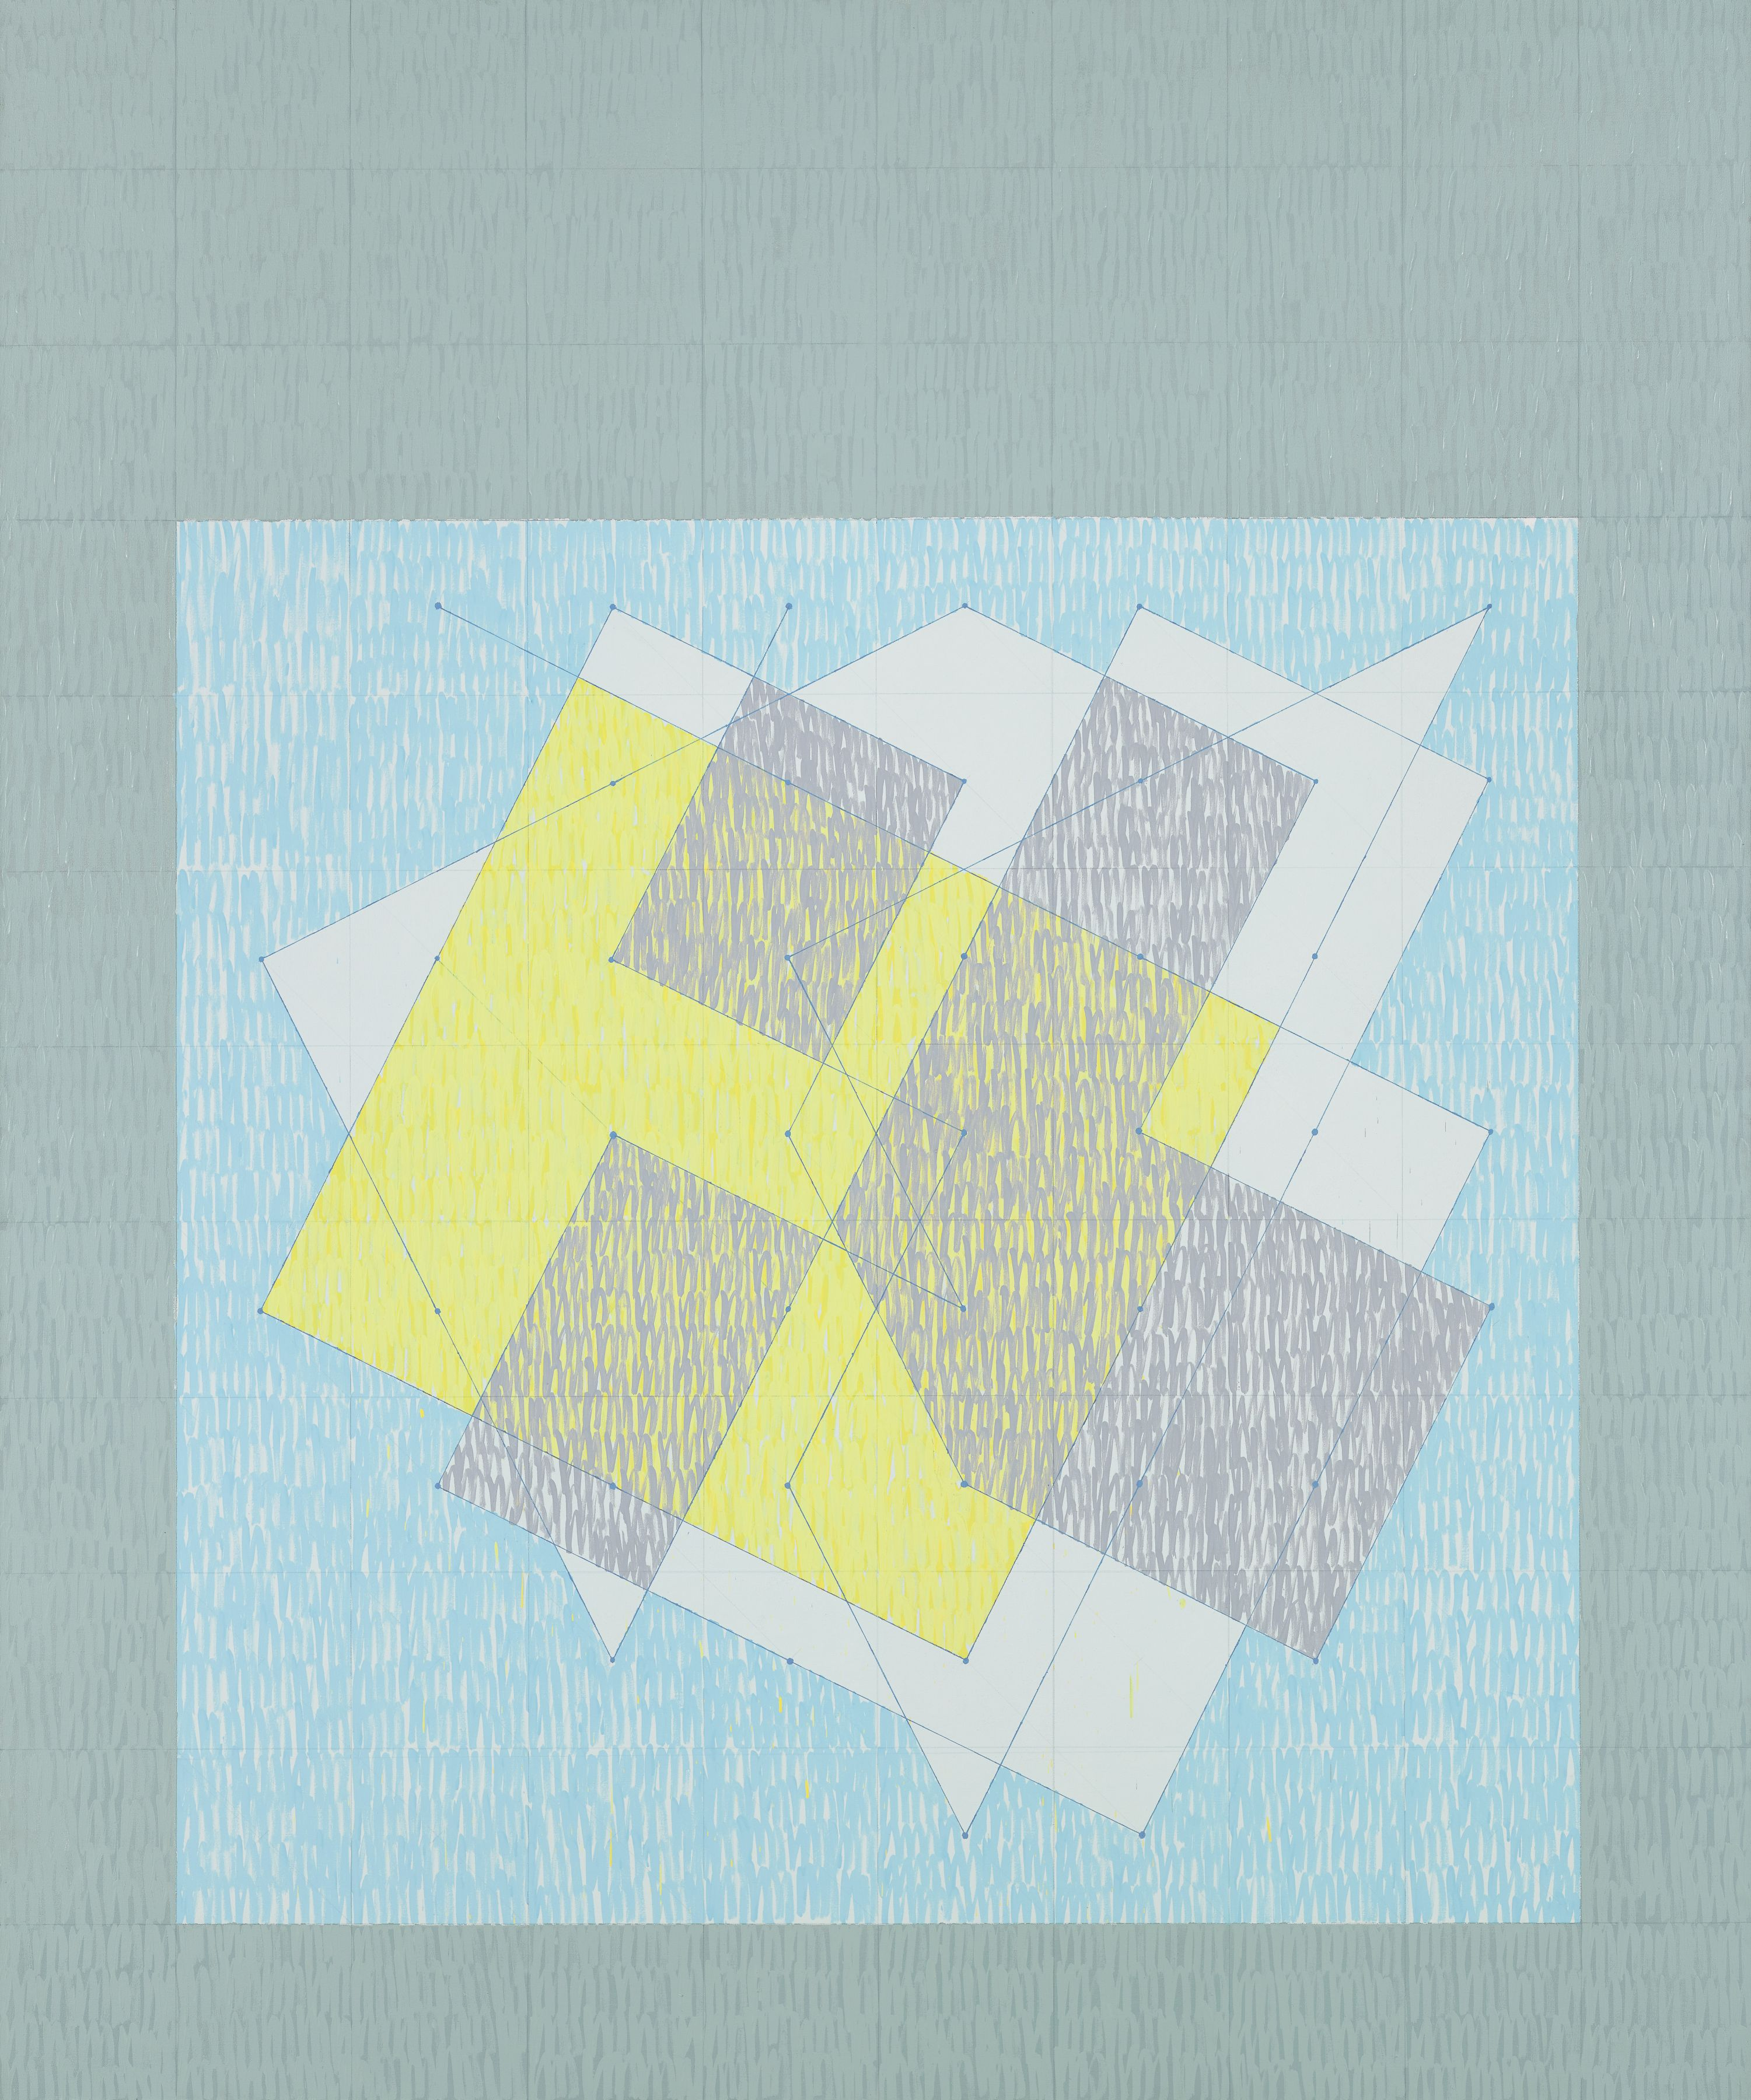 Knight Series #3 (Q3-75 #4), 1975, Oil on canvas